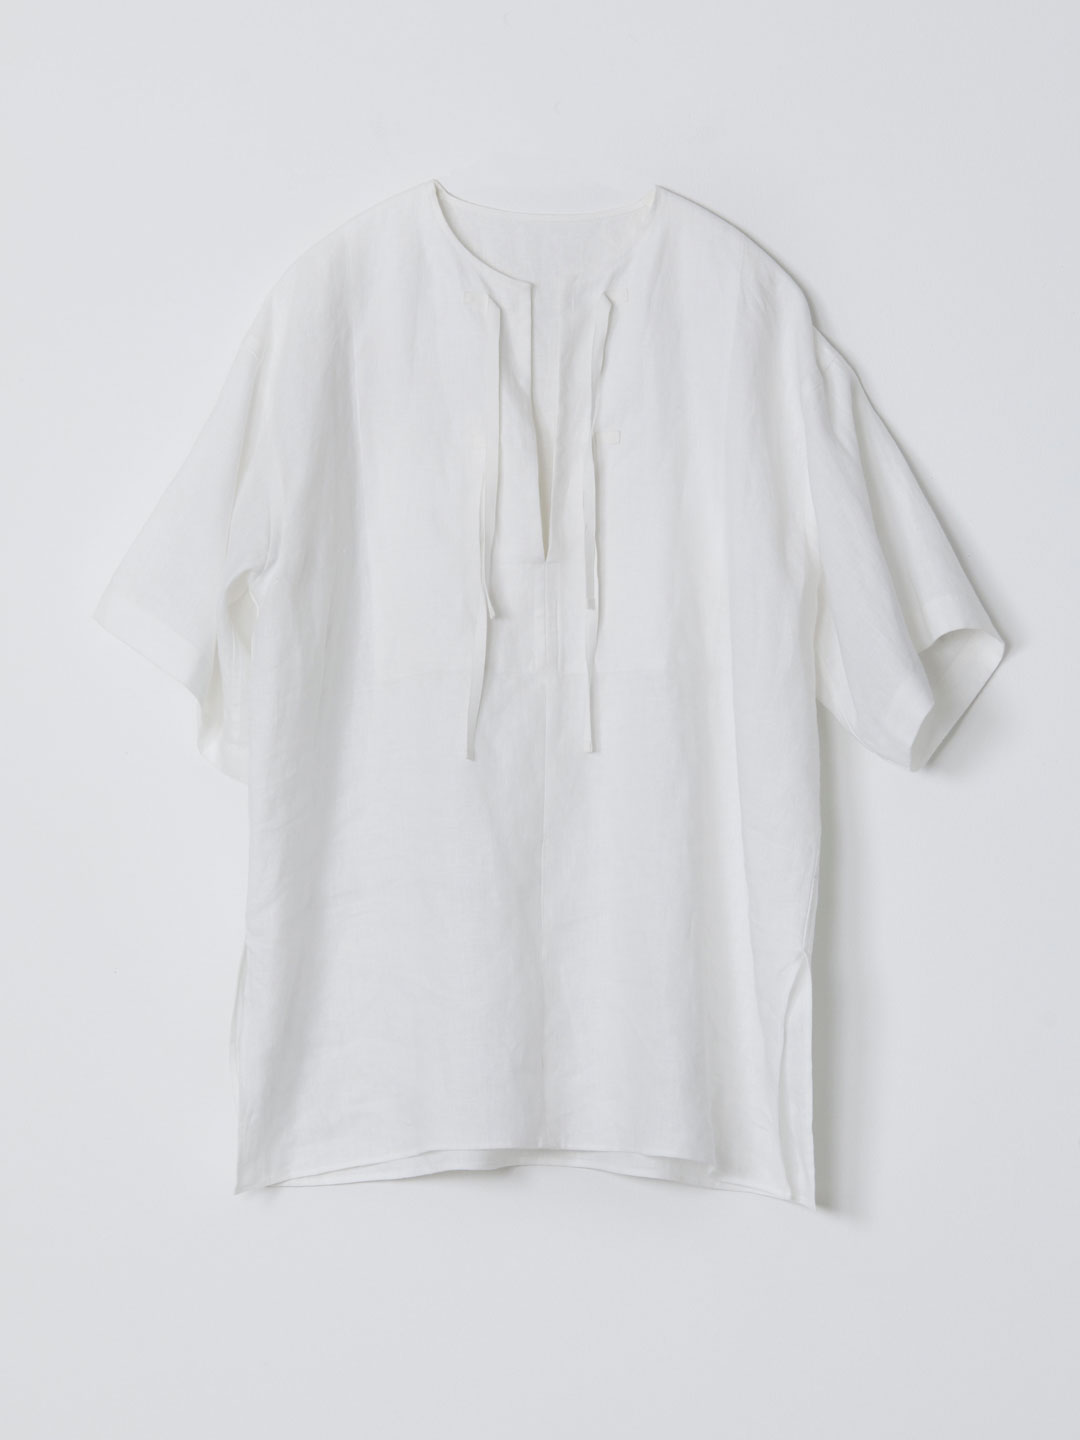 No 0225  Linen Pull-Over Pocket Top - White